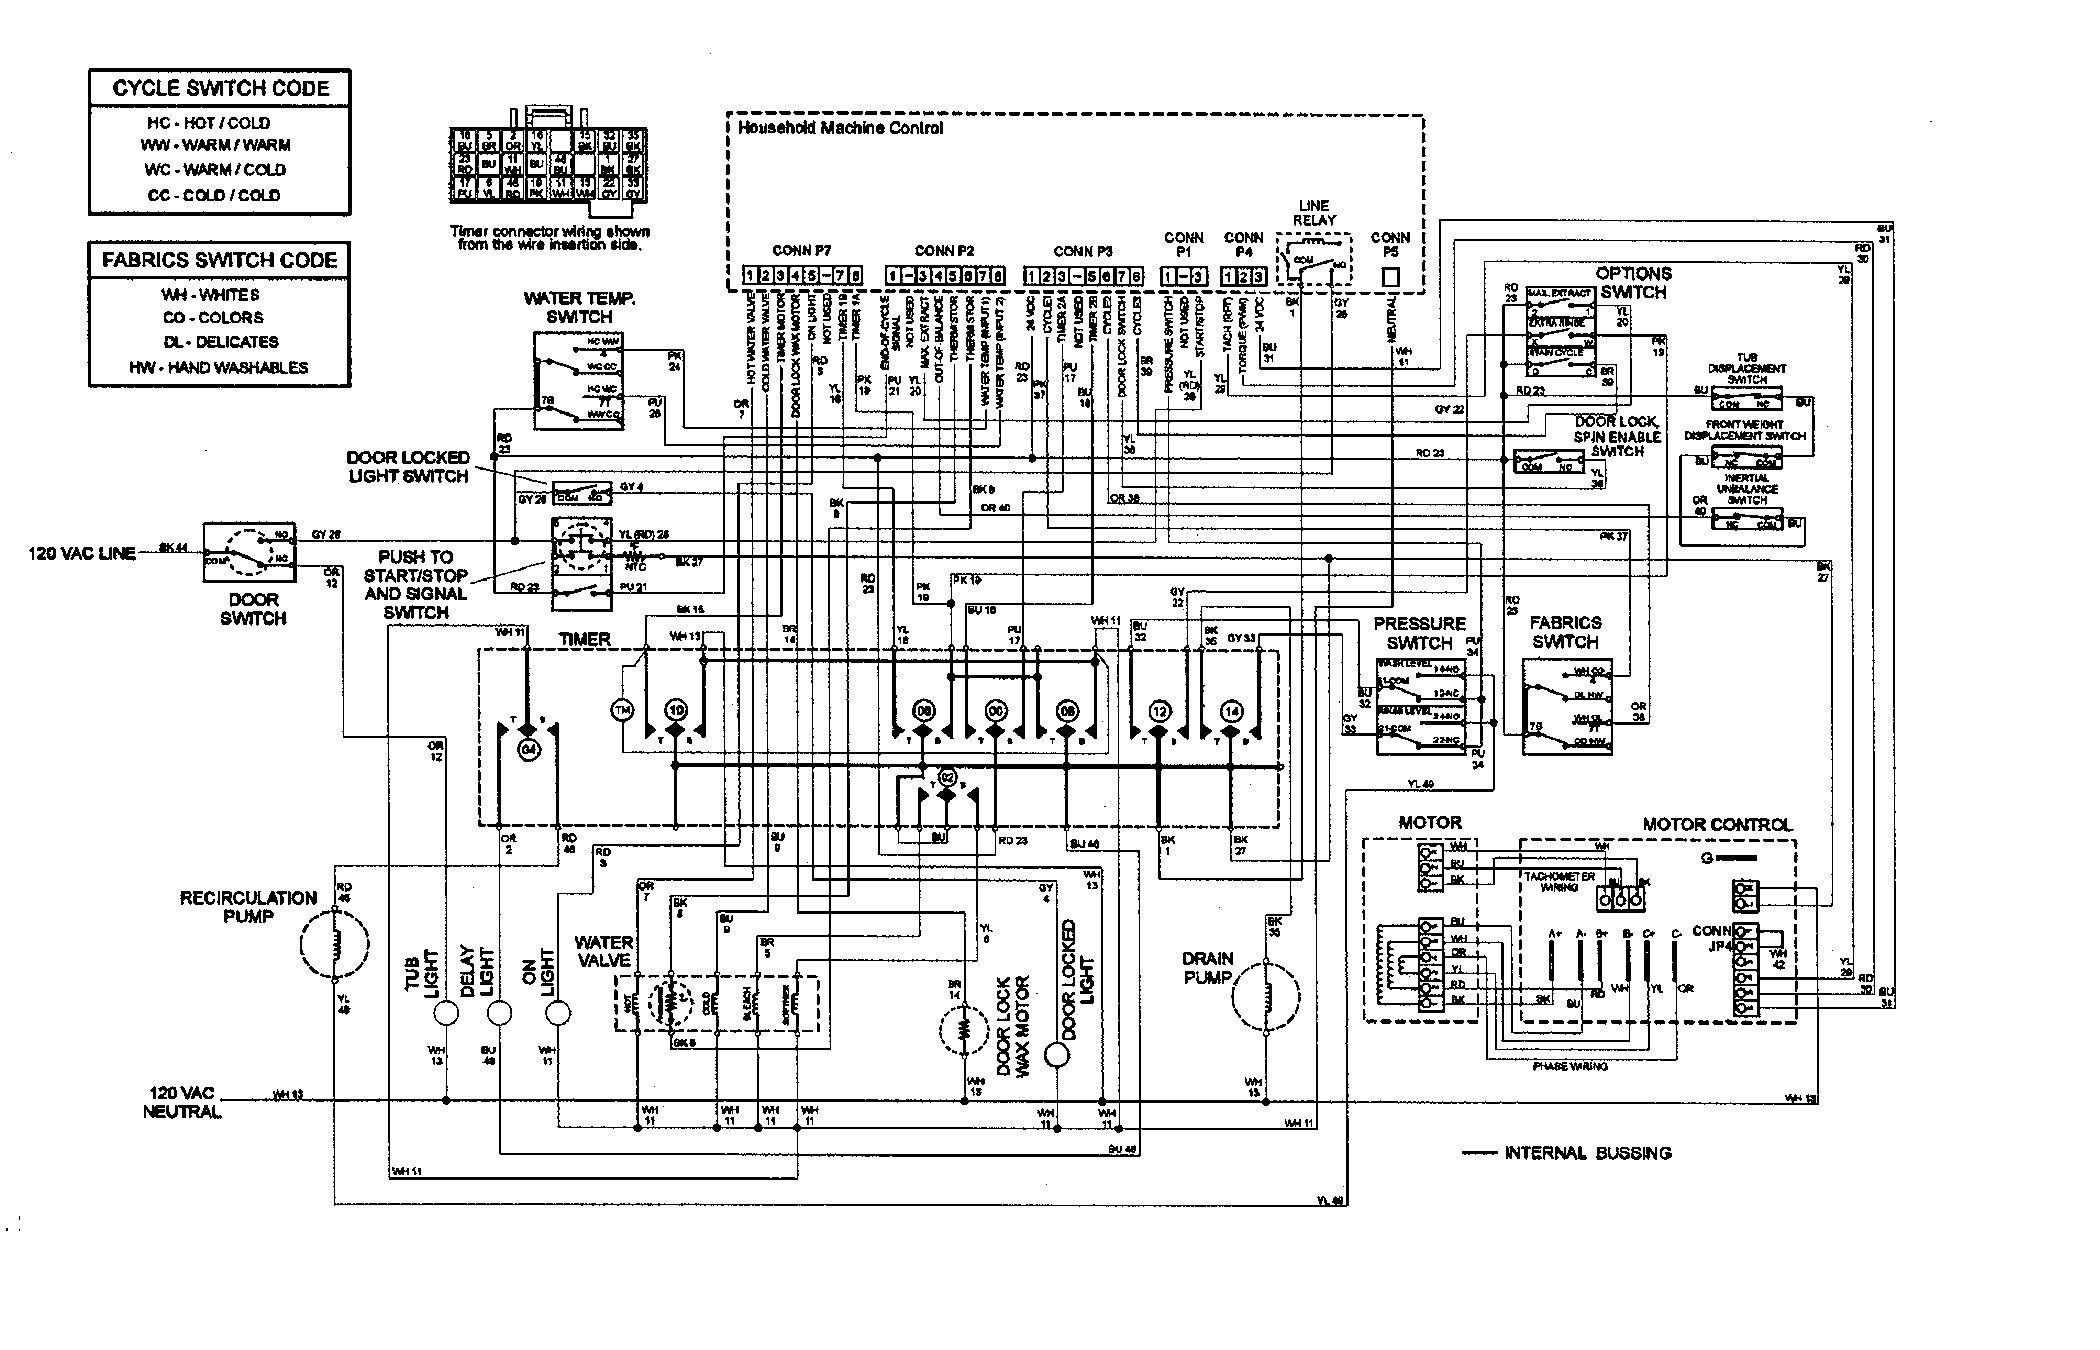 13 Wiring Diagram Of Washing Machine With Dryer References | Washing machine  and dryer, Washing machine motor, Washing machinePinterest